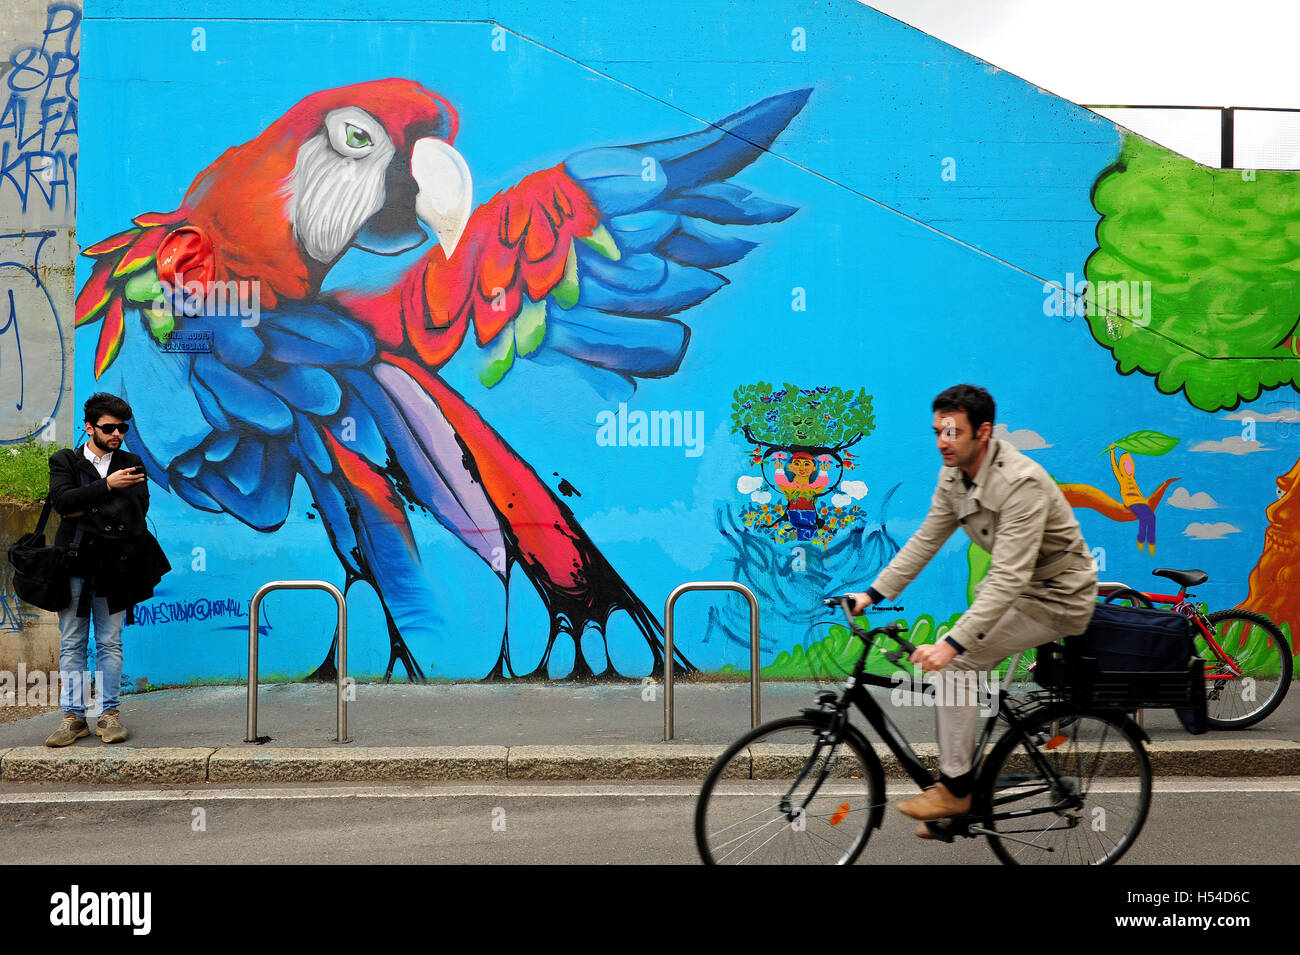 A man on a bicycle rides in front of a giant mural with a parrot, in the Isola district in Milan. Stock Photo